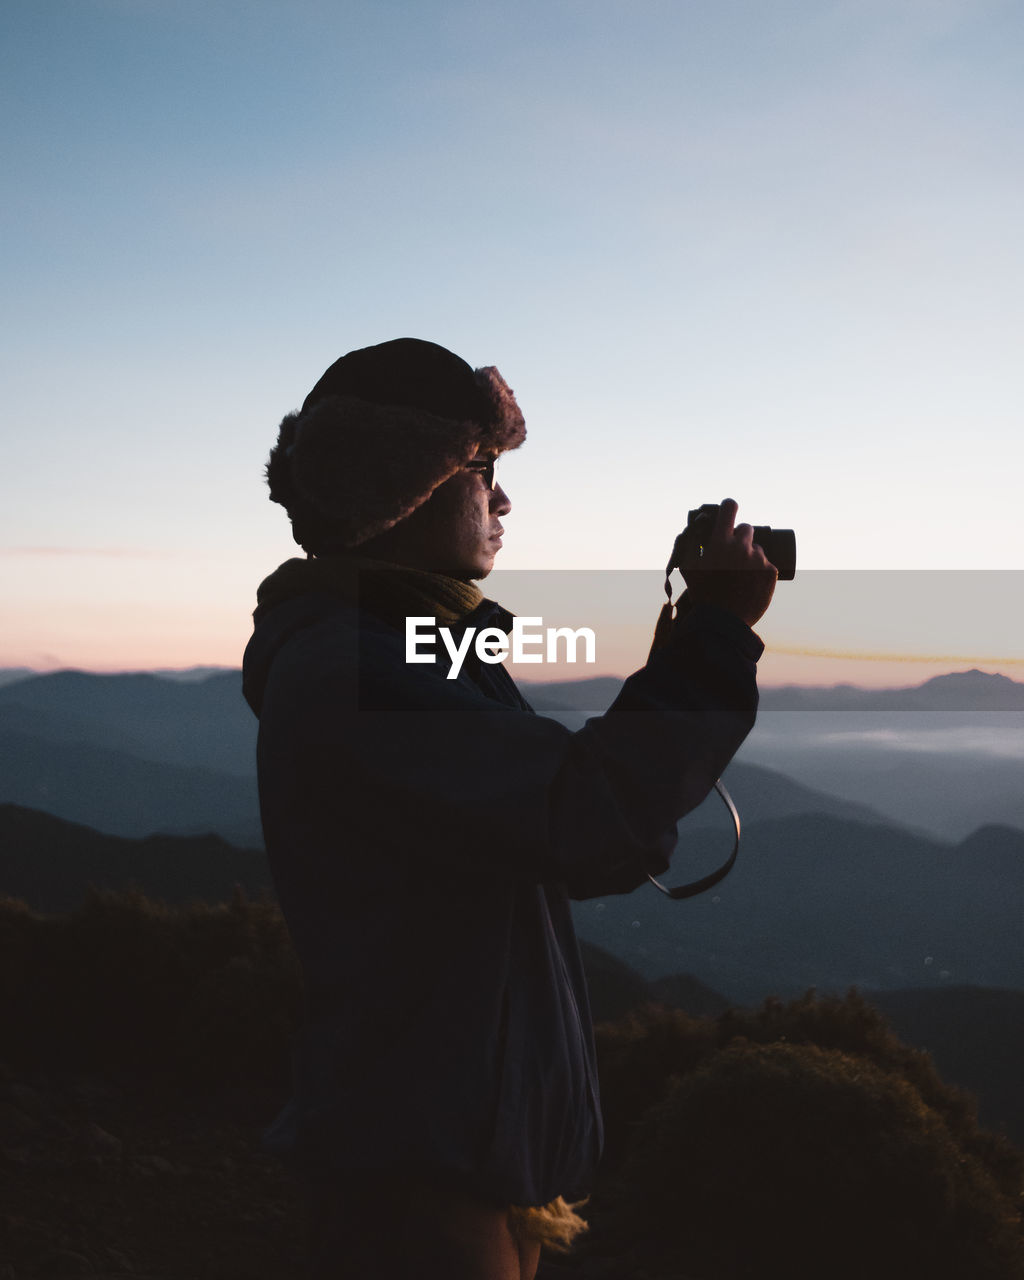 sky, photography themes, photographing, activity, camera - photographic equipment, real people, one person, standing, holding, leisure activity, technology, sunset, men, scenics - nature, beauty in nature, nature, lifestyles, mountain, side view, photographer, wireless technology, mature men, digital camera, outdoors, modern